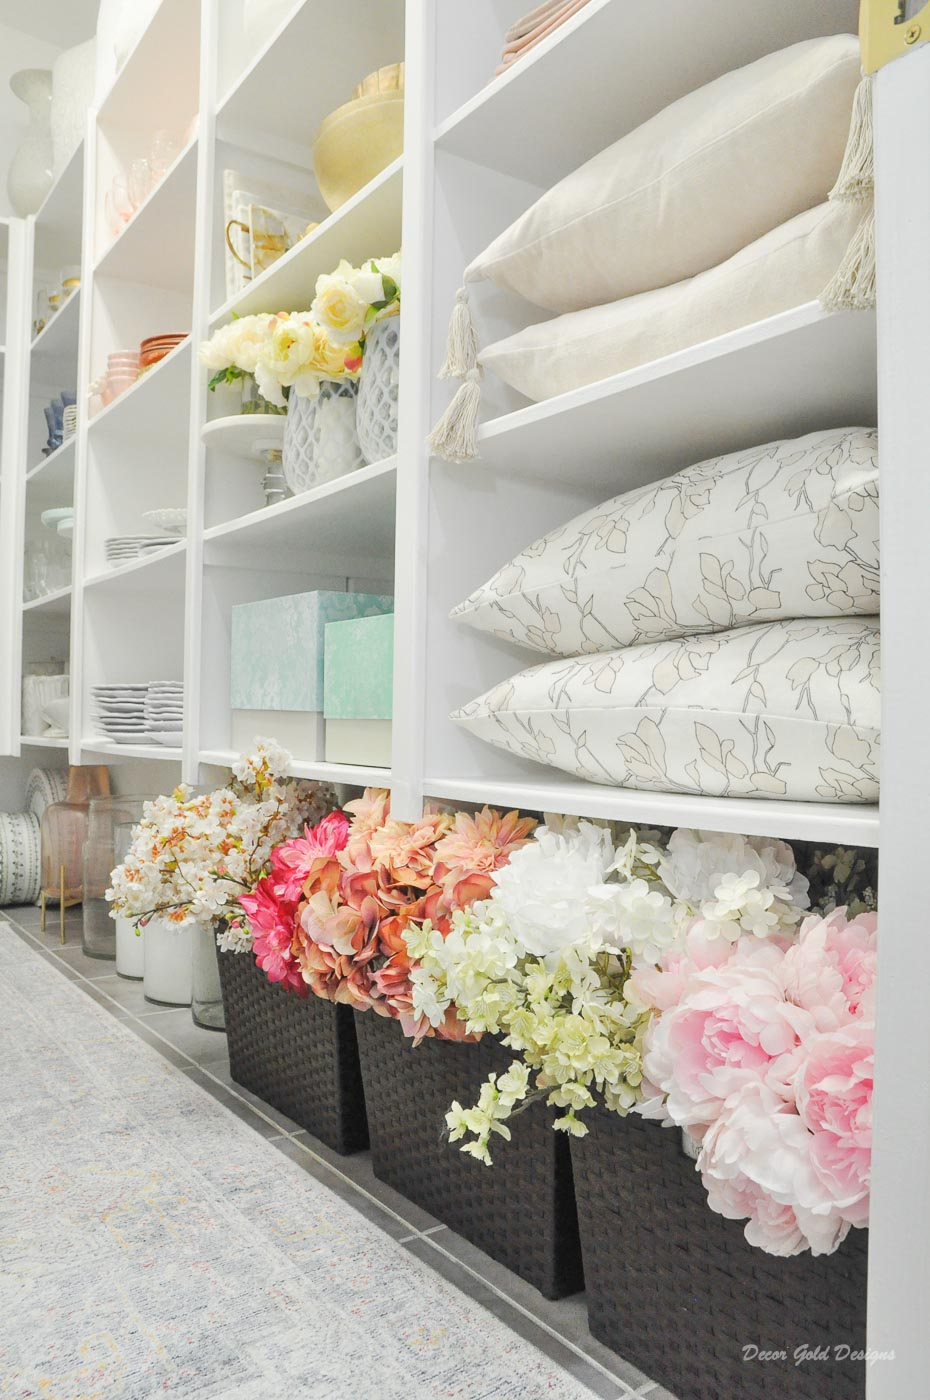 Entertaining closet faux flowers baskets